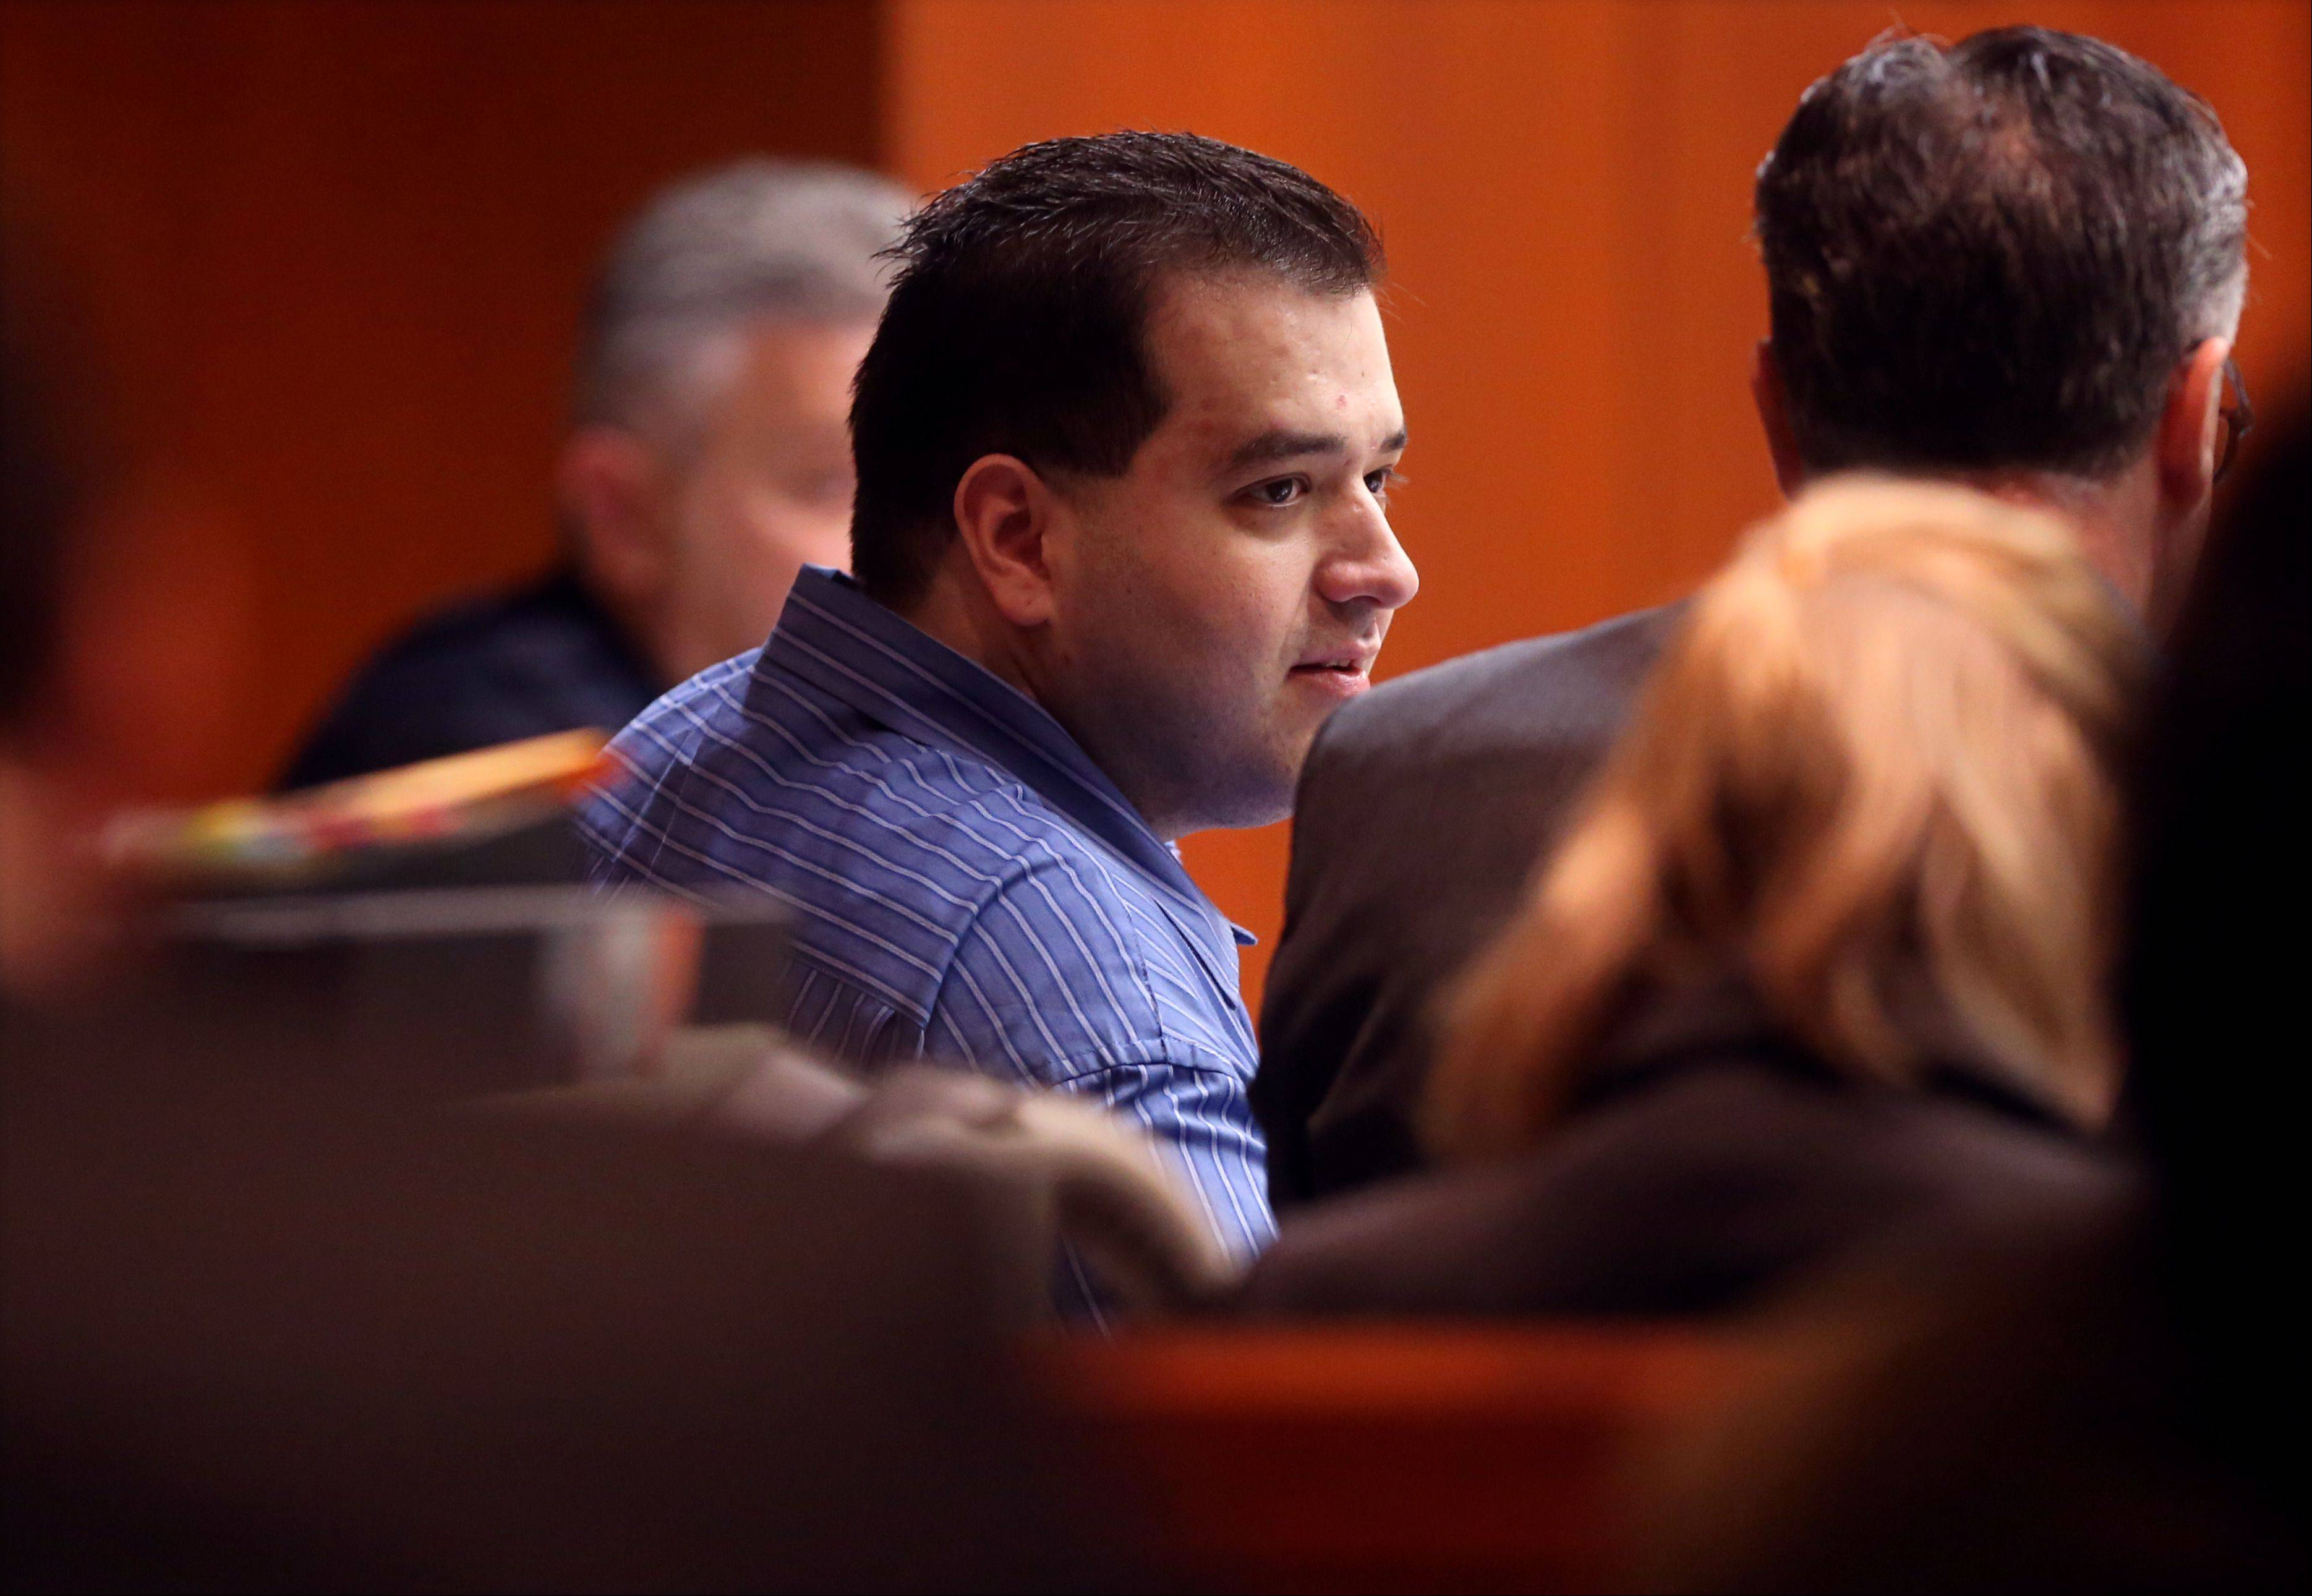 Johnny Borizov listens to the cross-examination of co-defendant Jacob Nodarse on April 26 at the DuPage County courthouse in Wheaton.